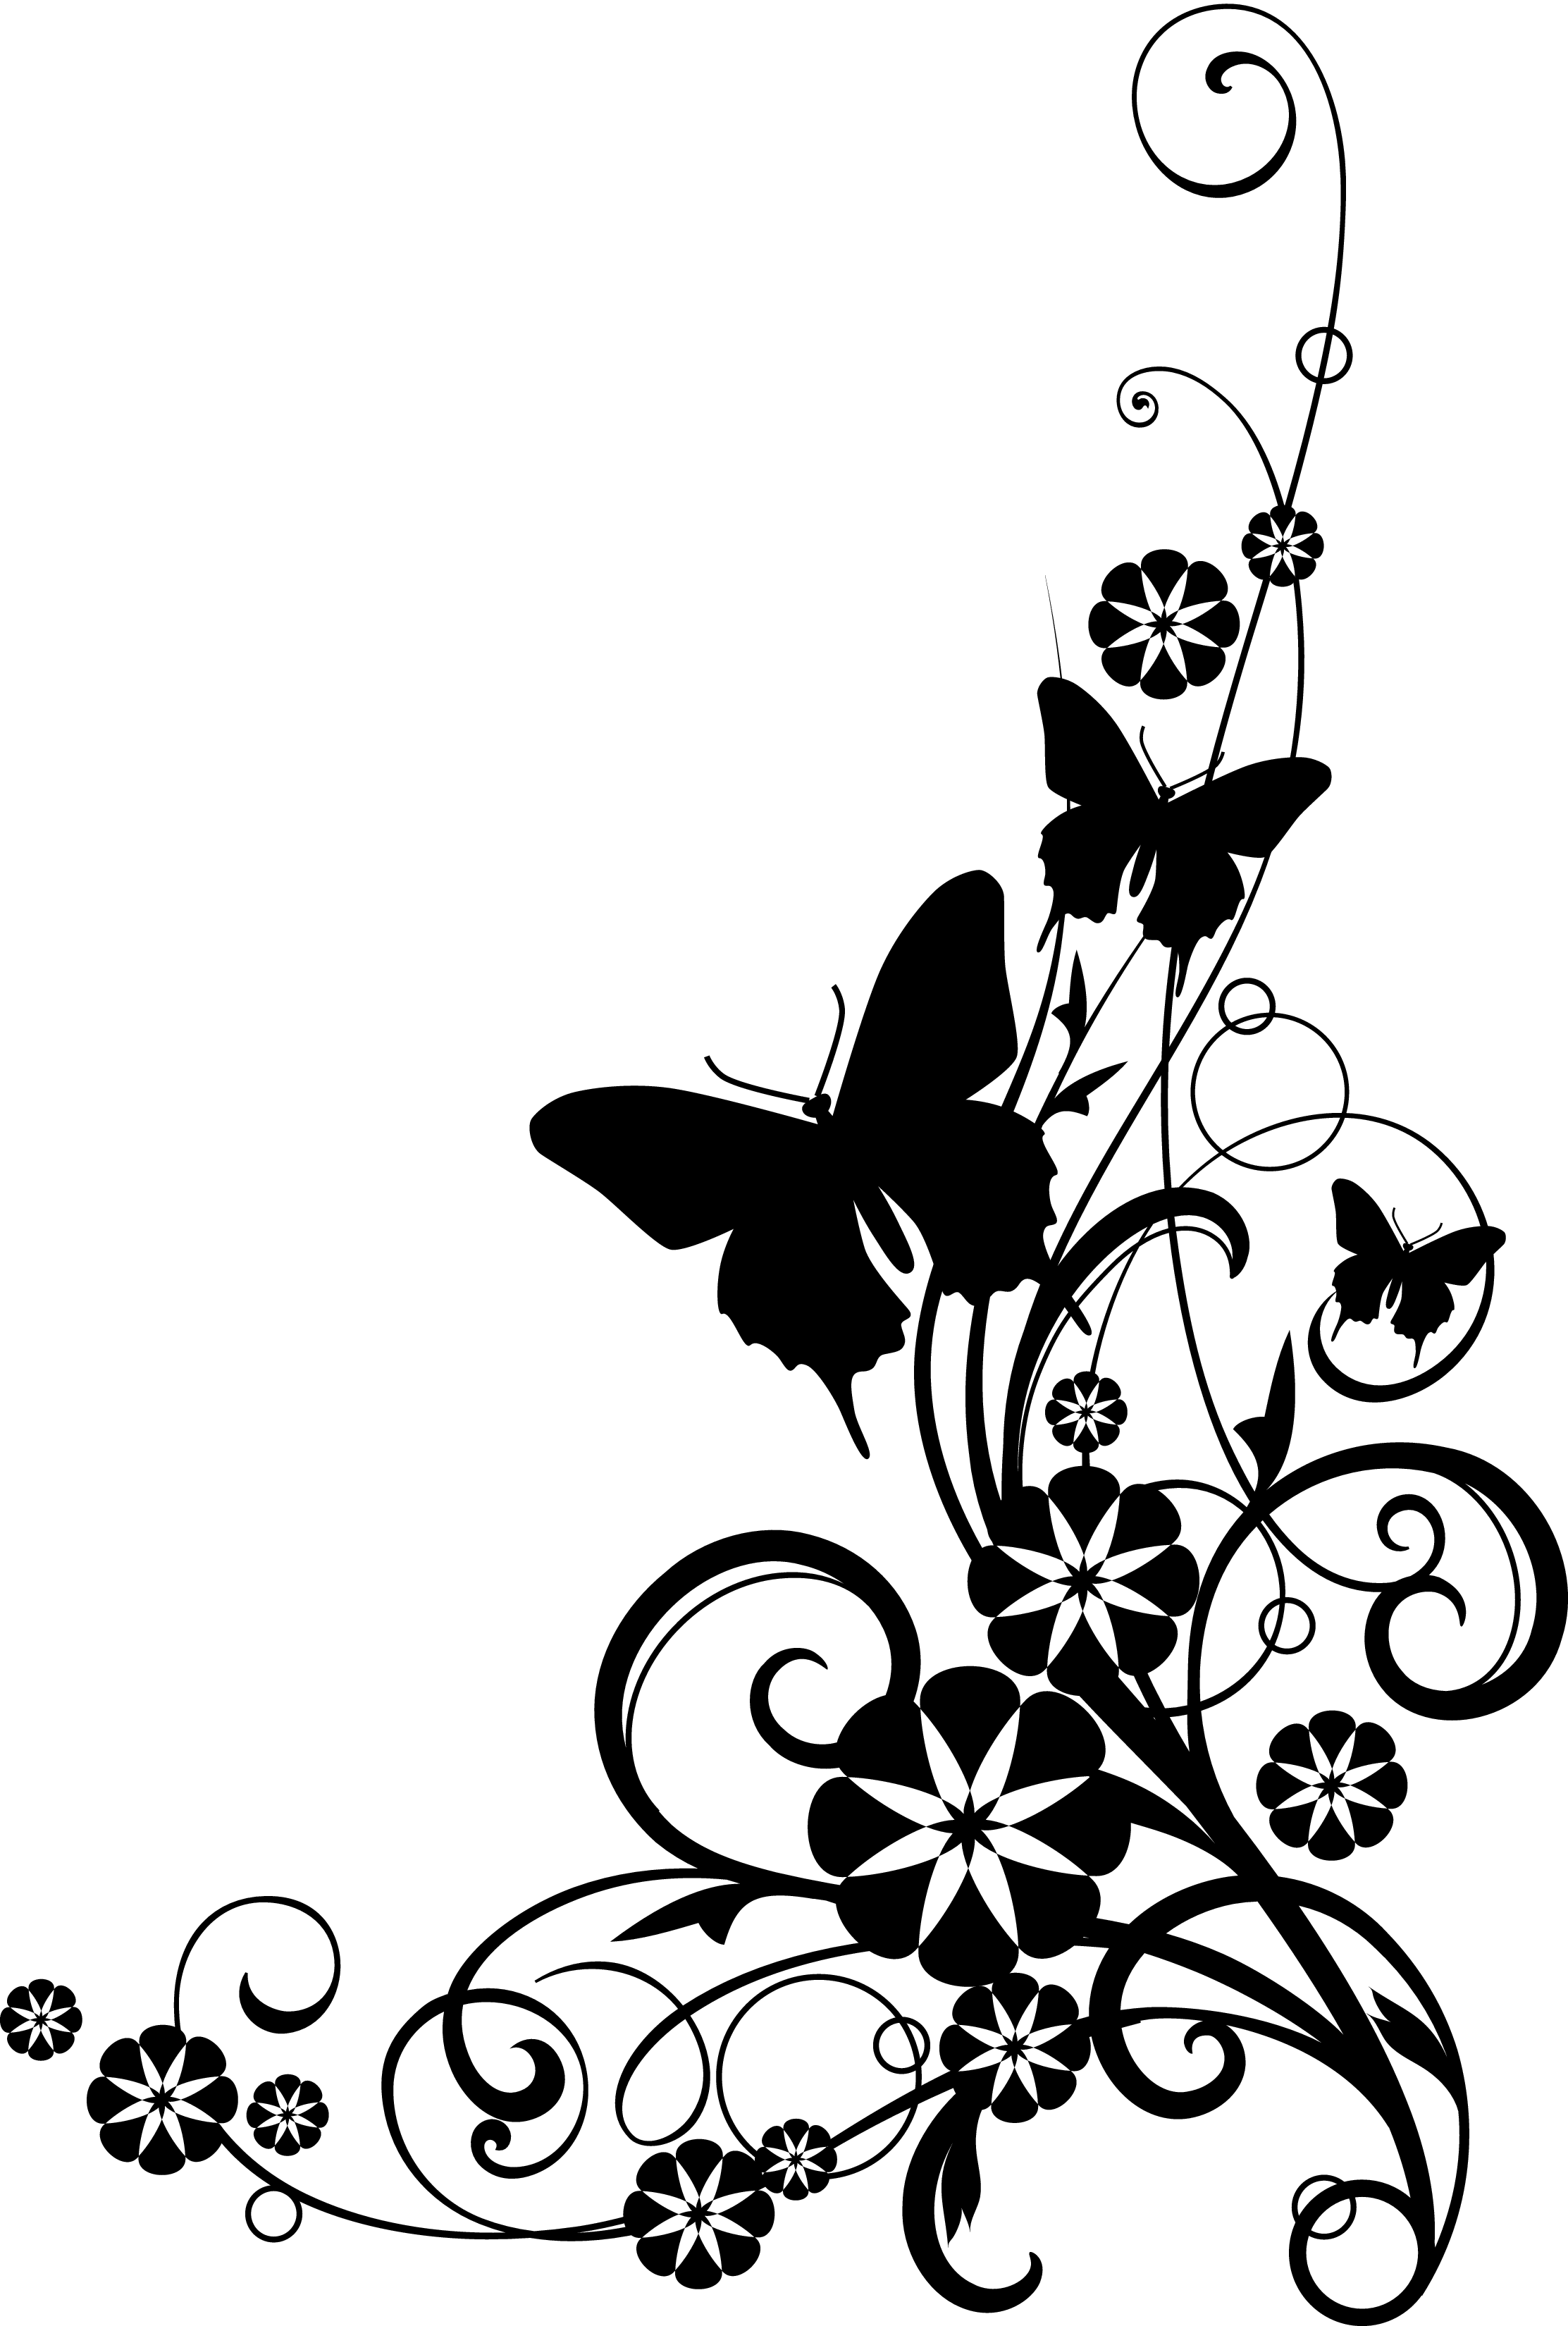 Wildflower Sketch Black And White